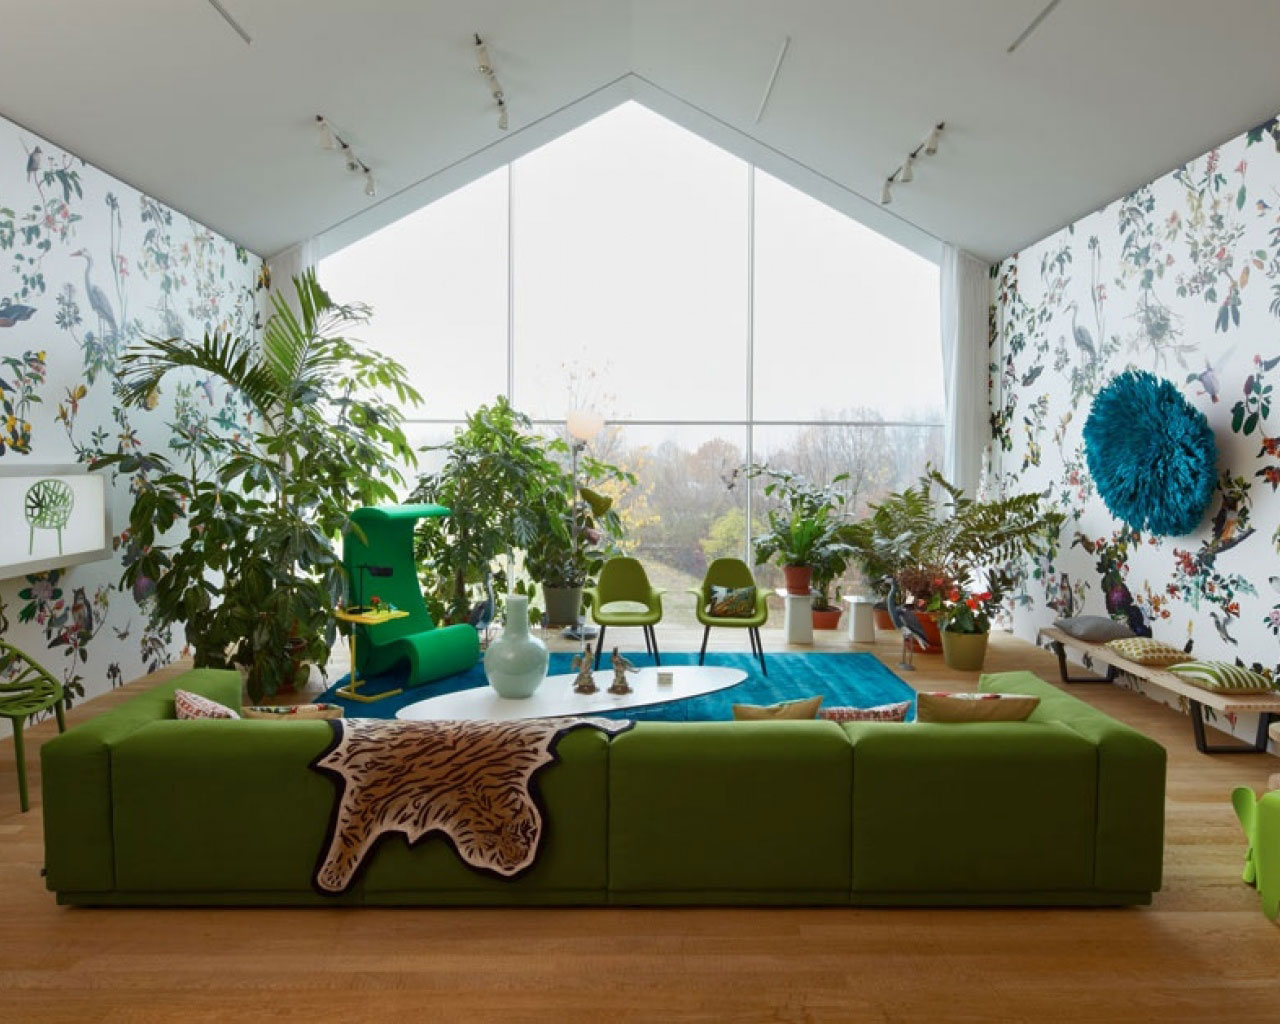 Vitra house project